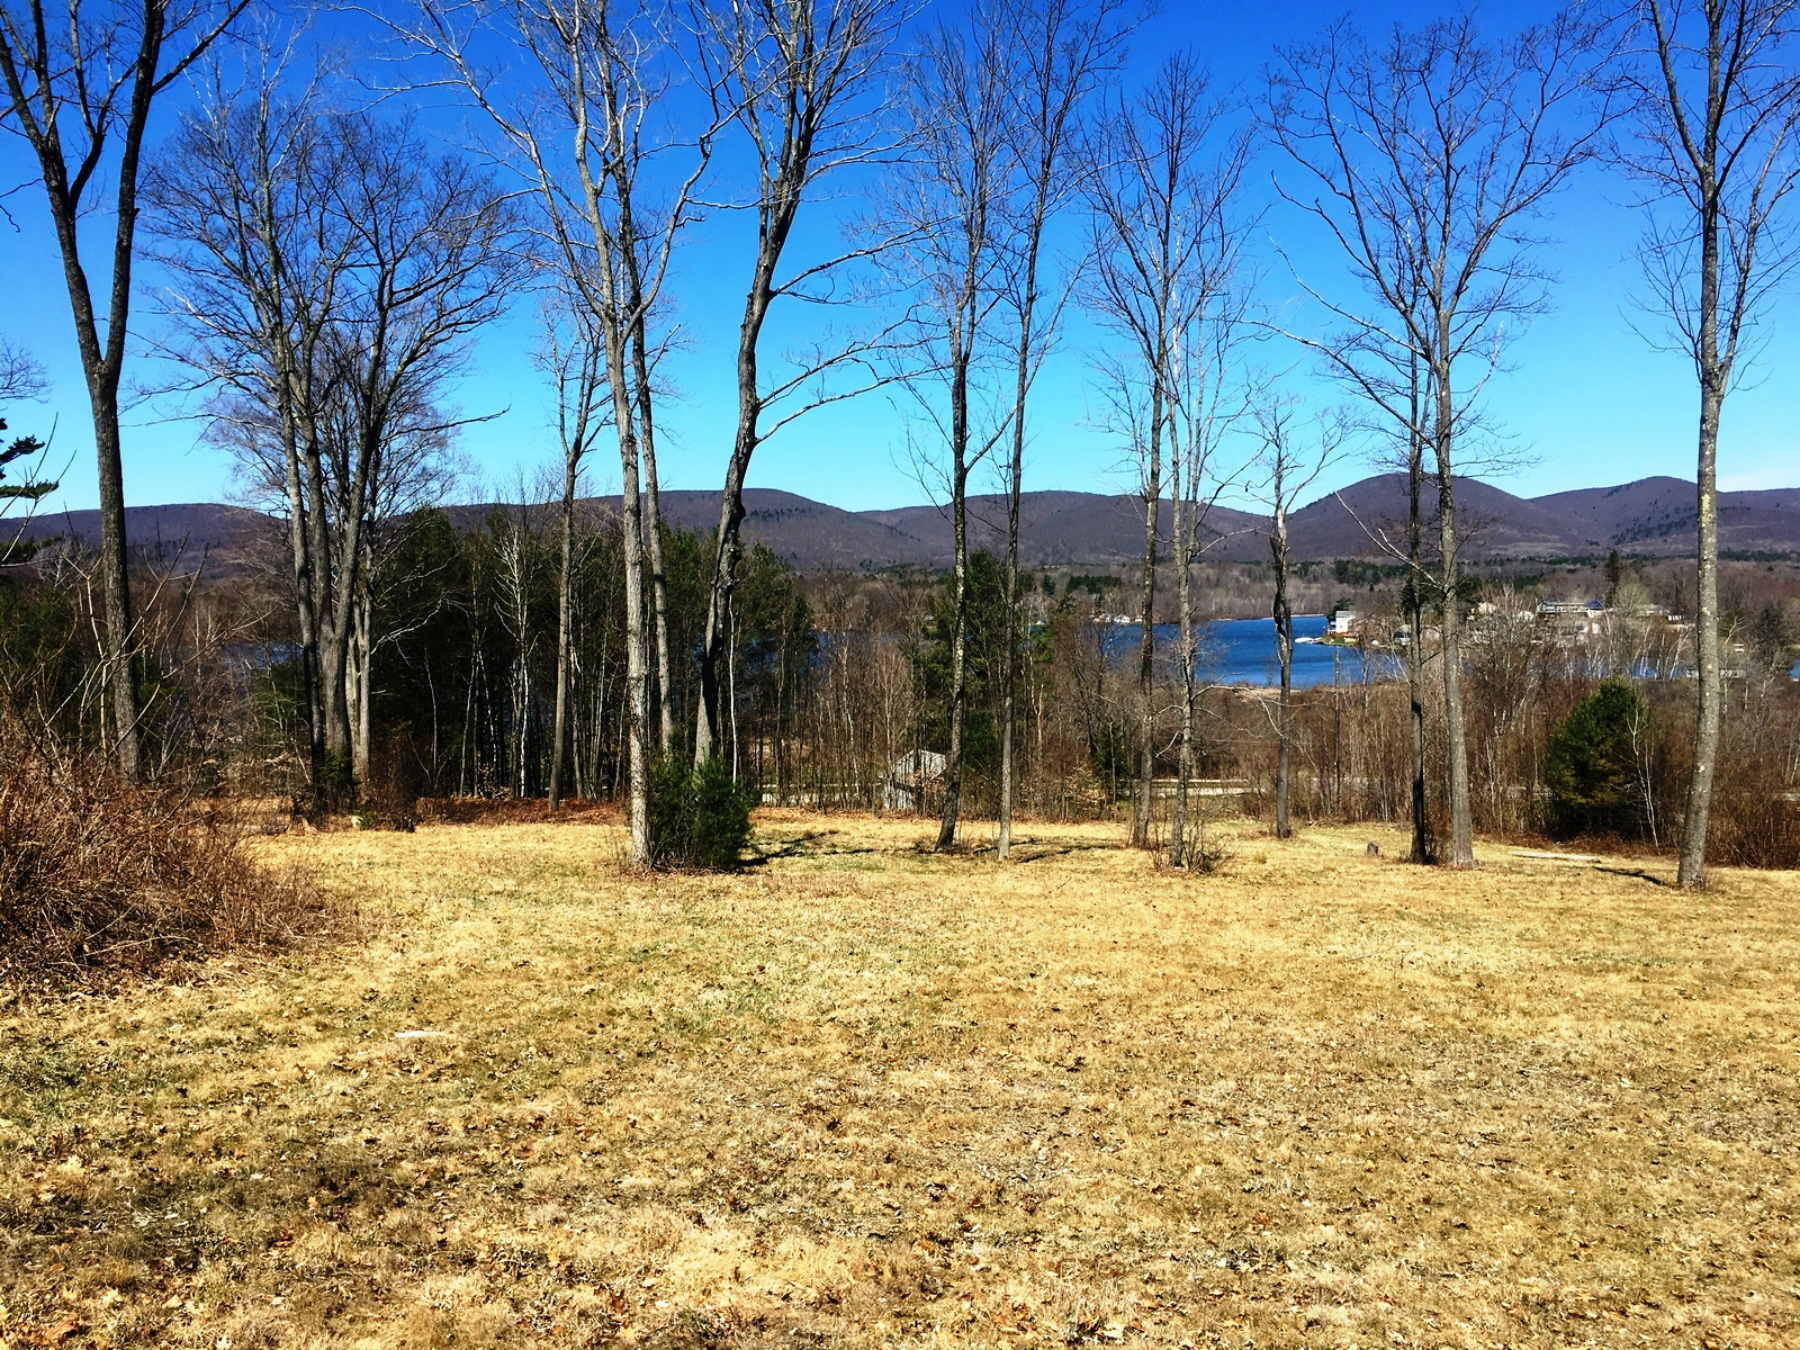 Земля для того Продажа на Lots starting at $89,000 with LakeMountain Views, HikingBiking Trails and Beac Lot 201 Valentine Rd Pittsfield, Массачусетс 01201 Соединенные Штаты